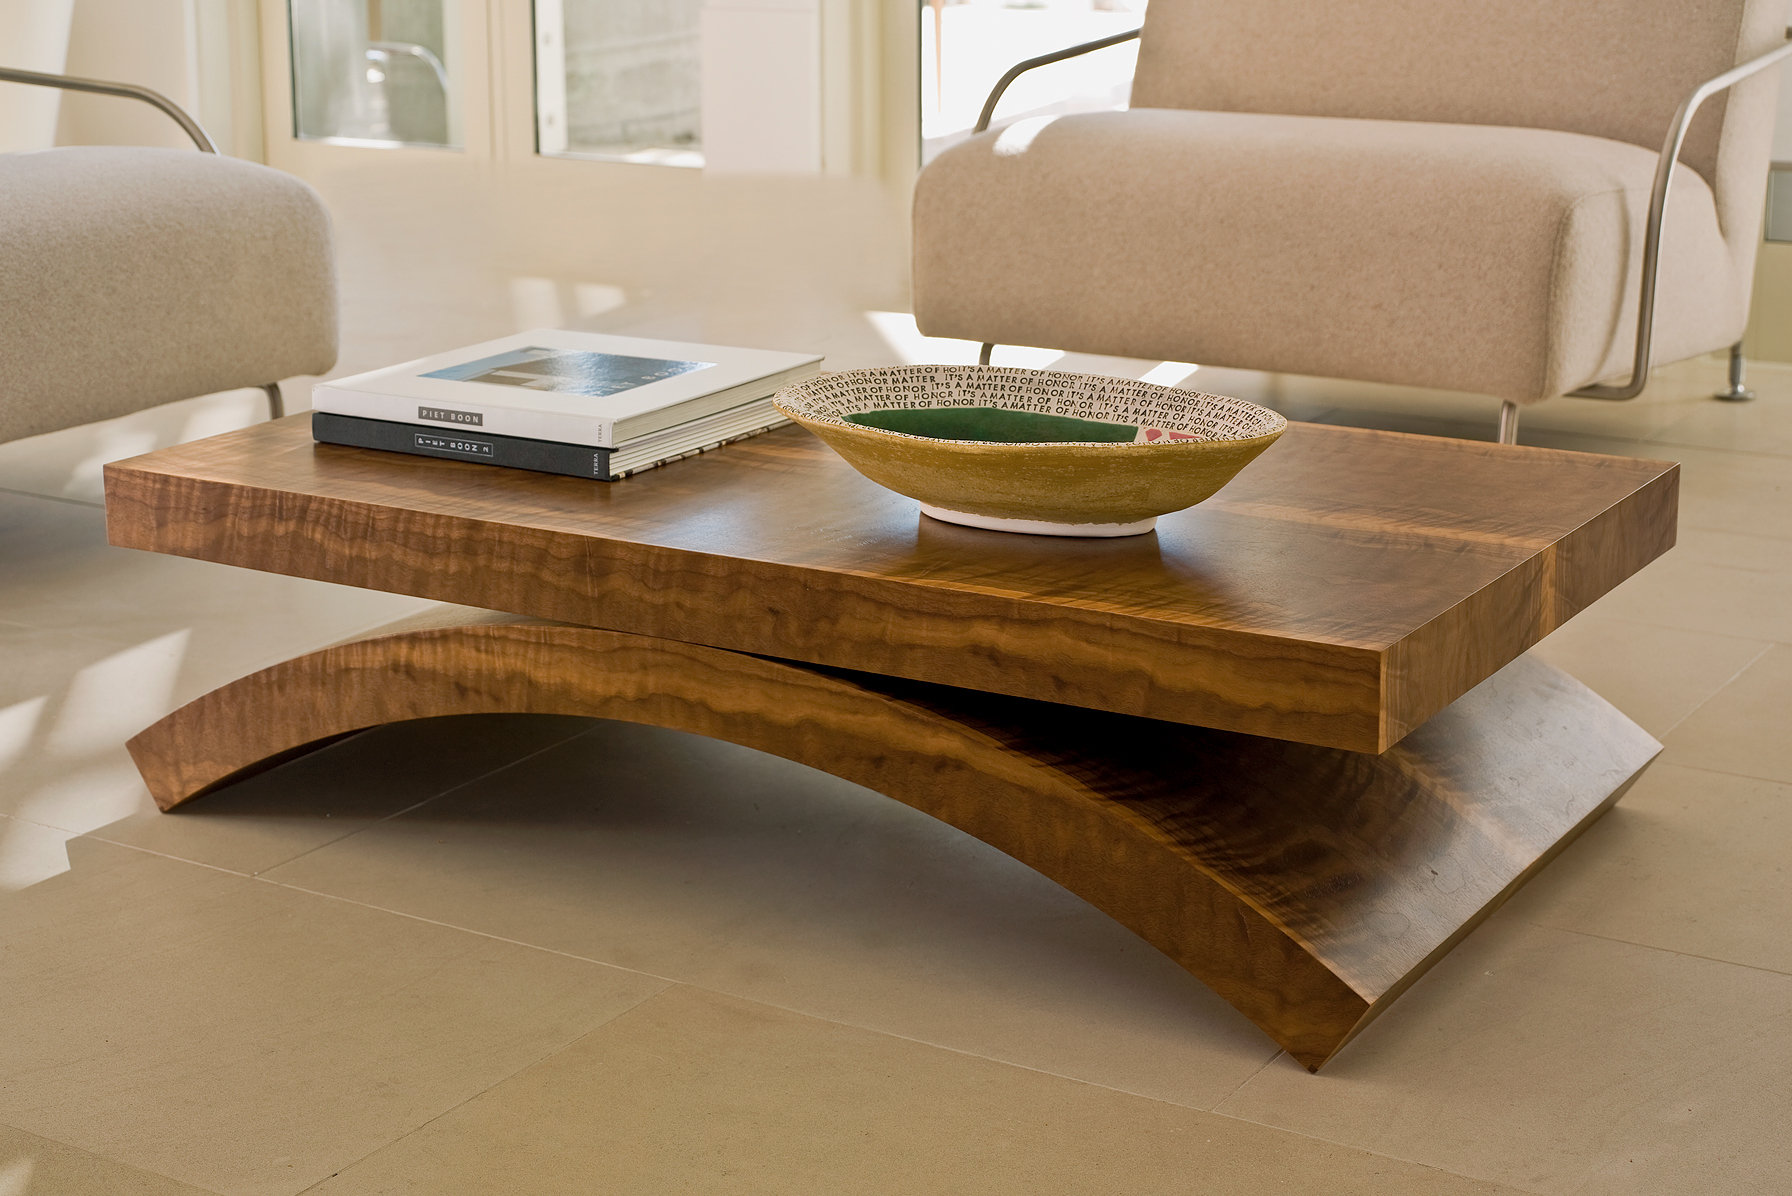 Wonderful image of Solid Wood Living Room Table #1111 House Decor Tips with #68451D color and 1792x1196 pixels